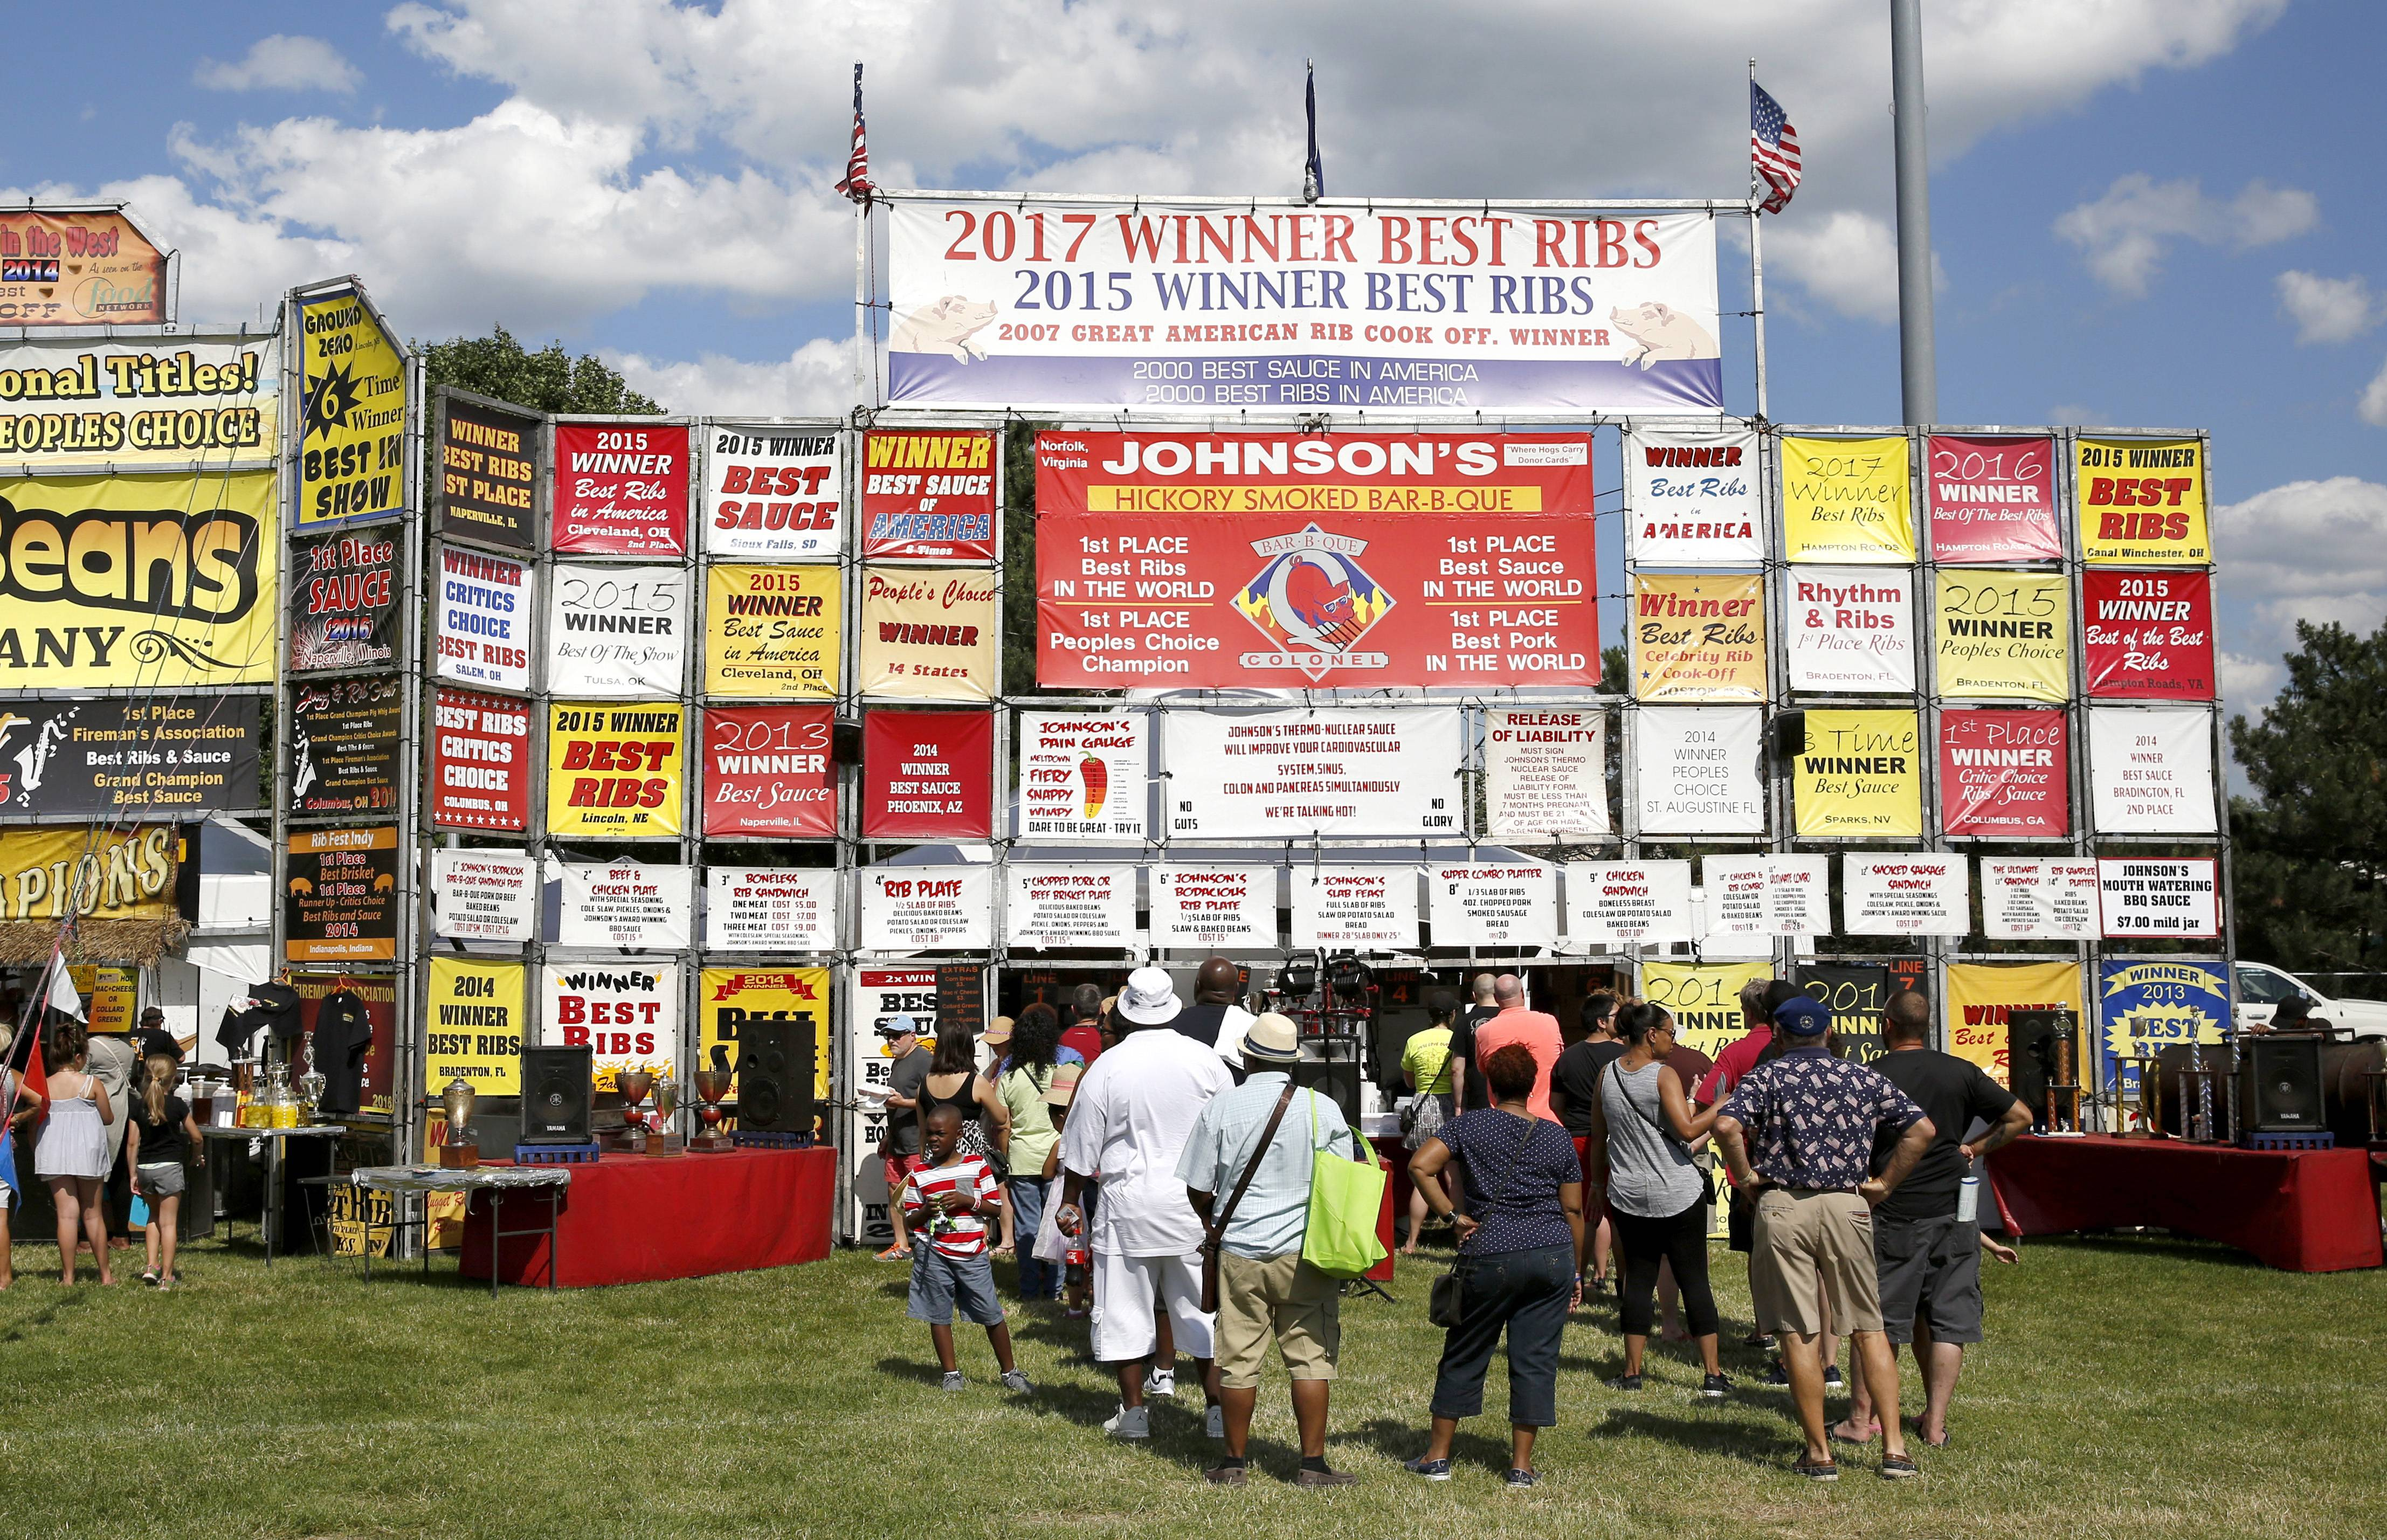 Ribfest hopes new 2020 location can improve parking, layout